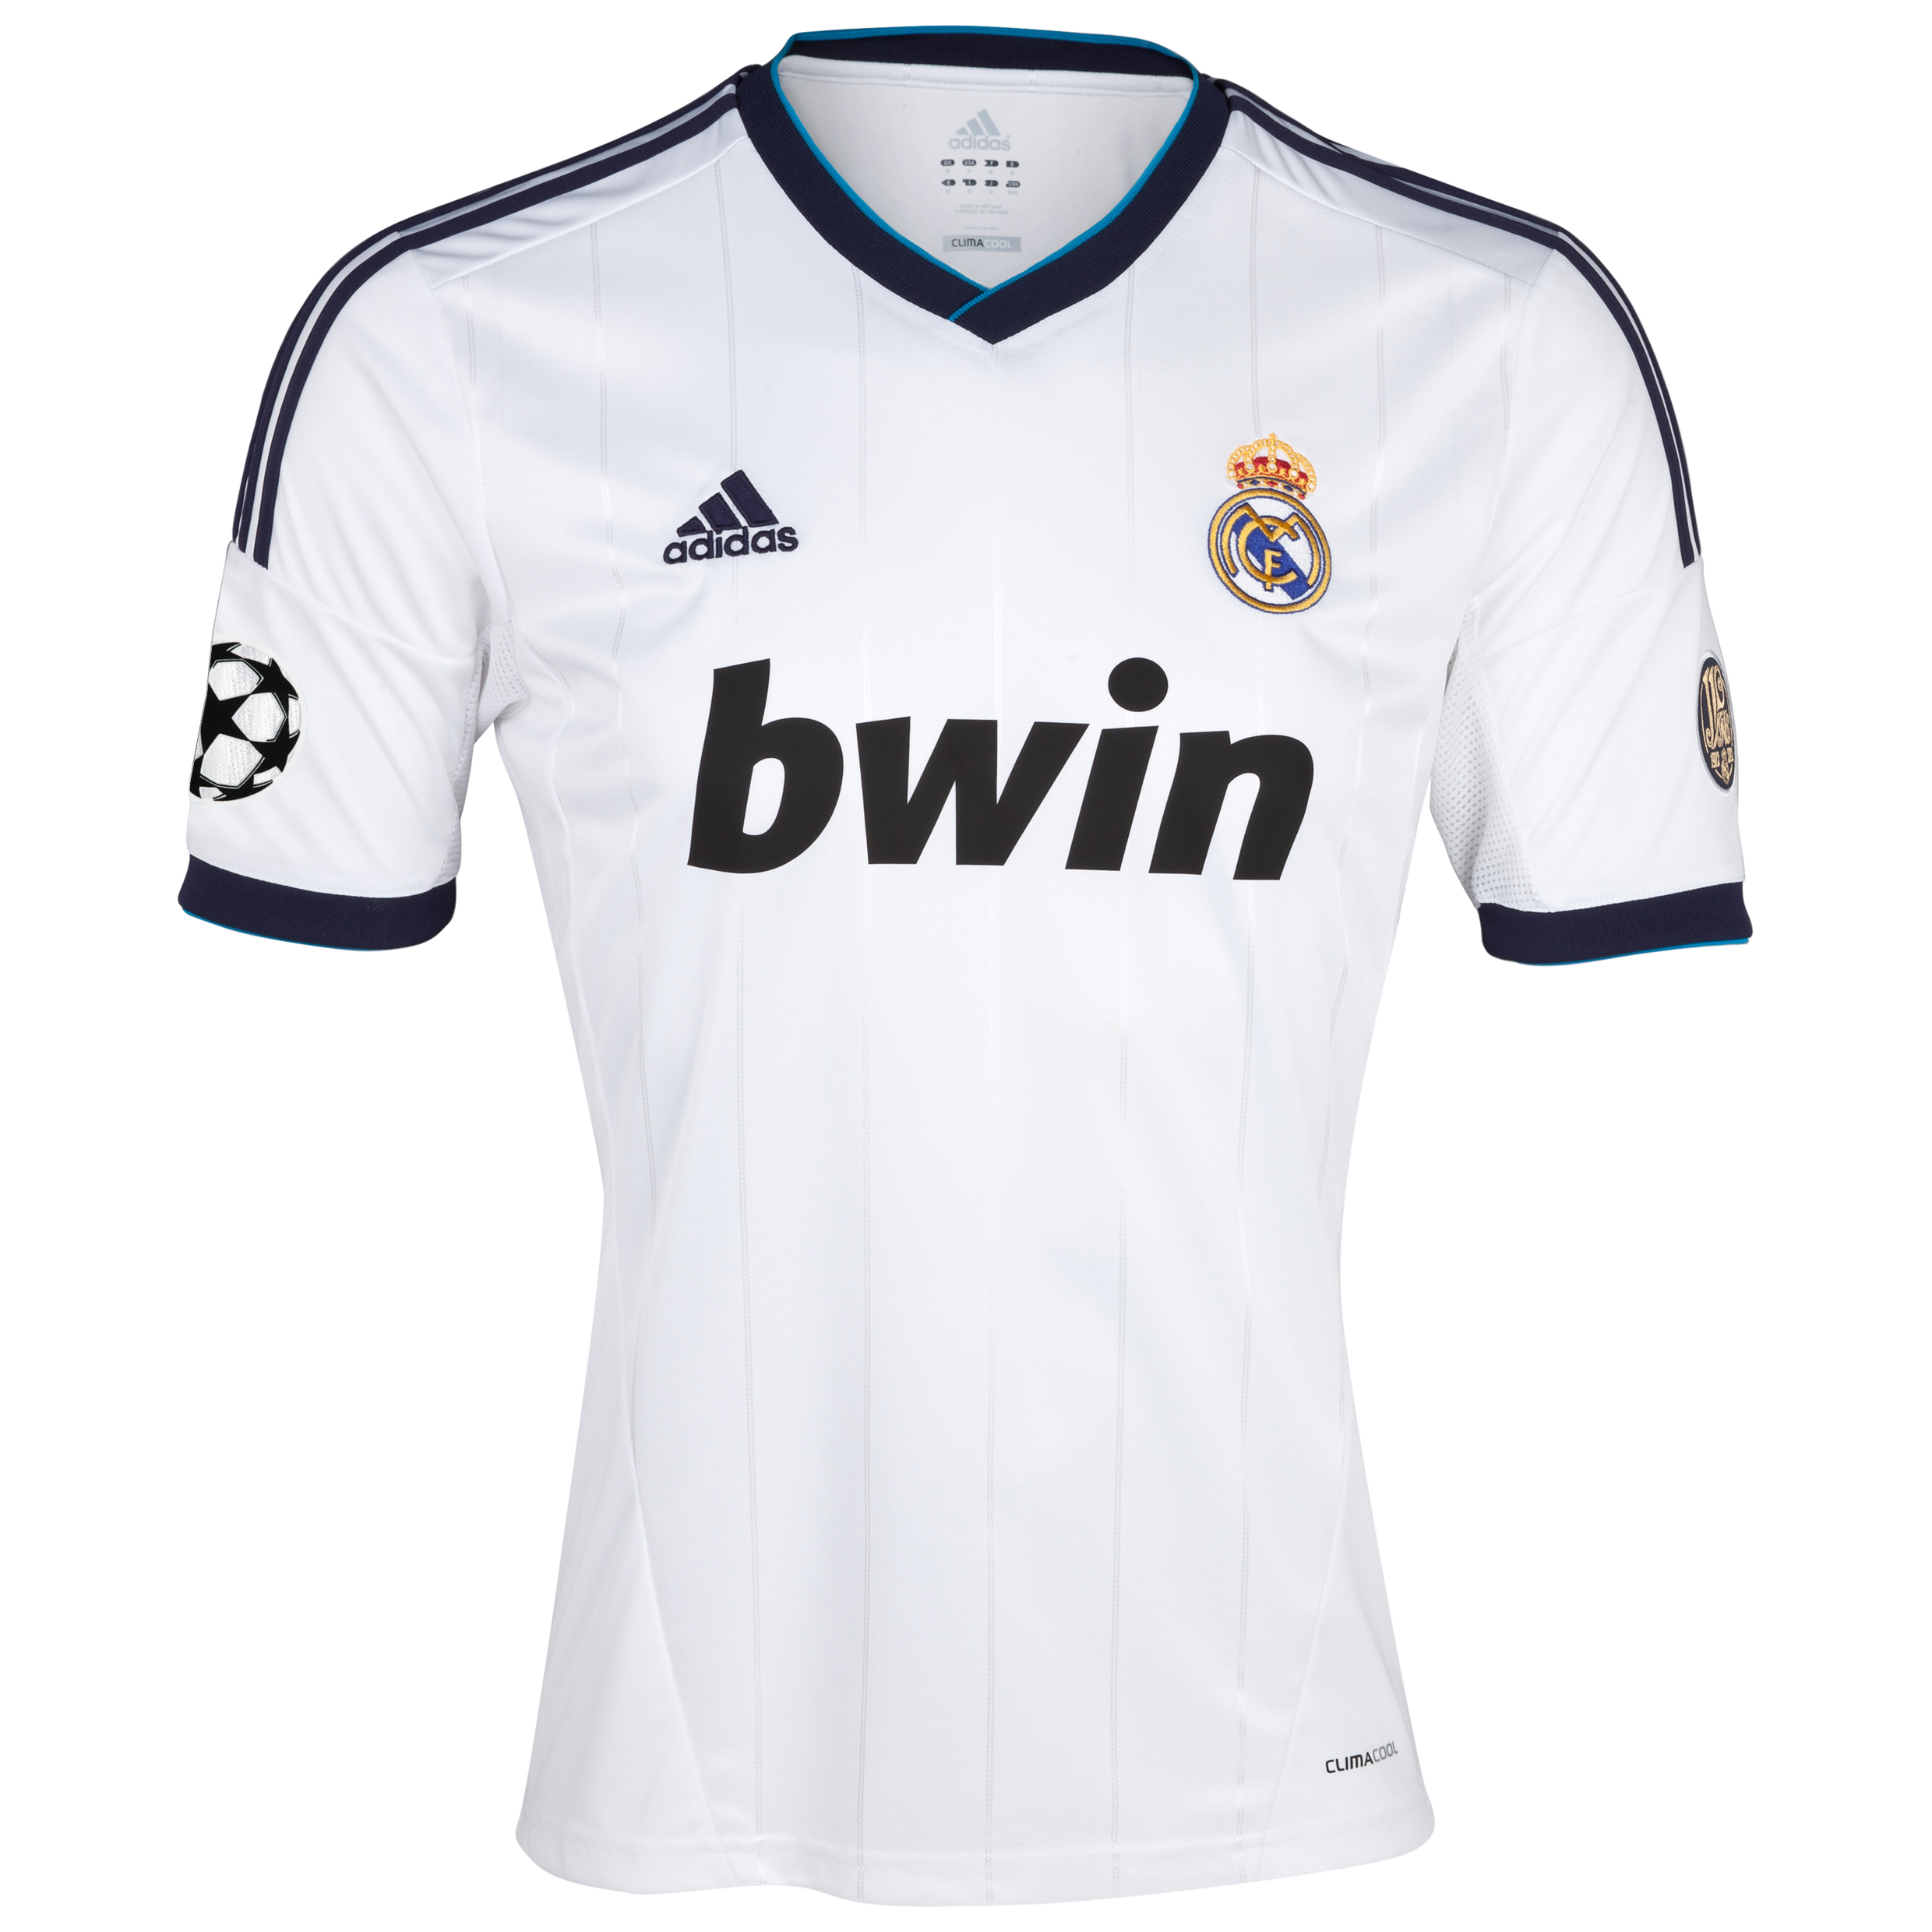 Real Madrid UEFA Champions League Home Shirt 2012/13 Youths